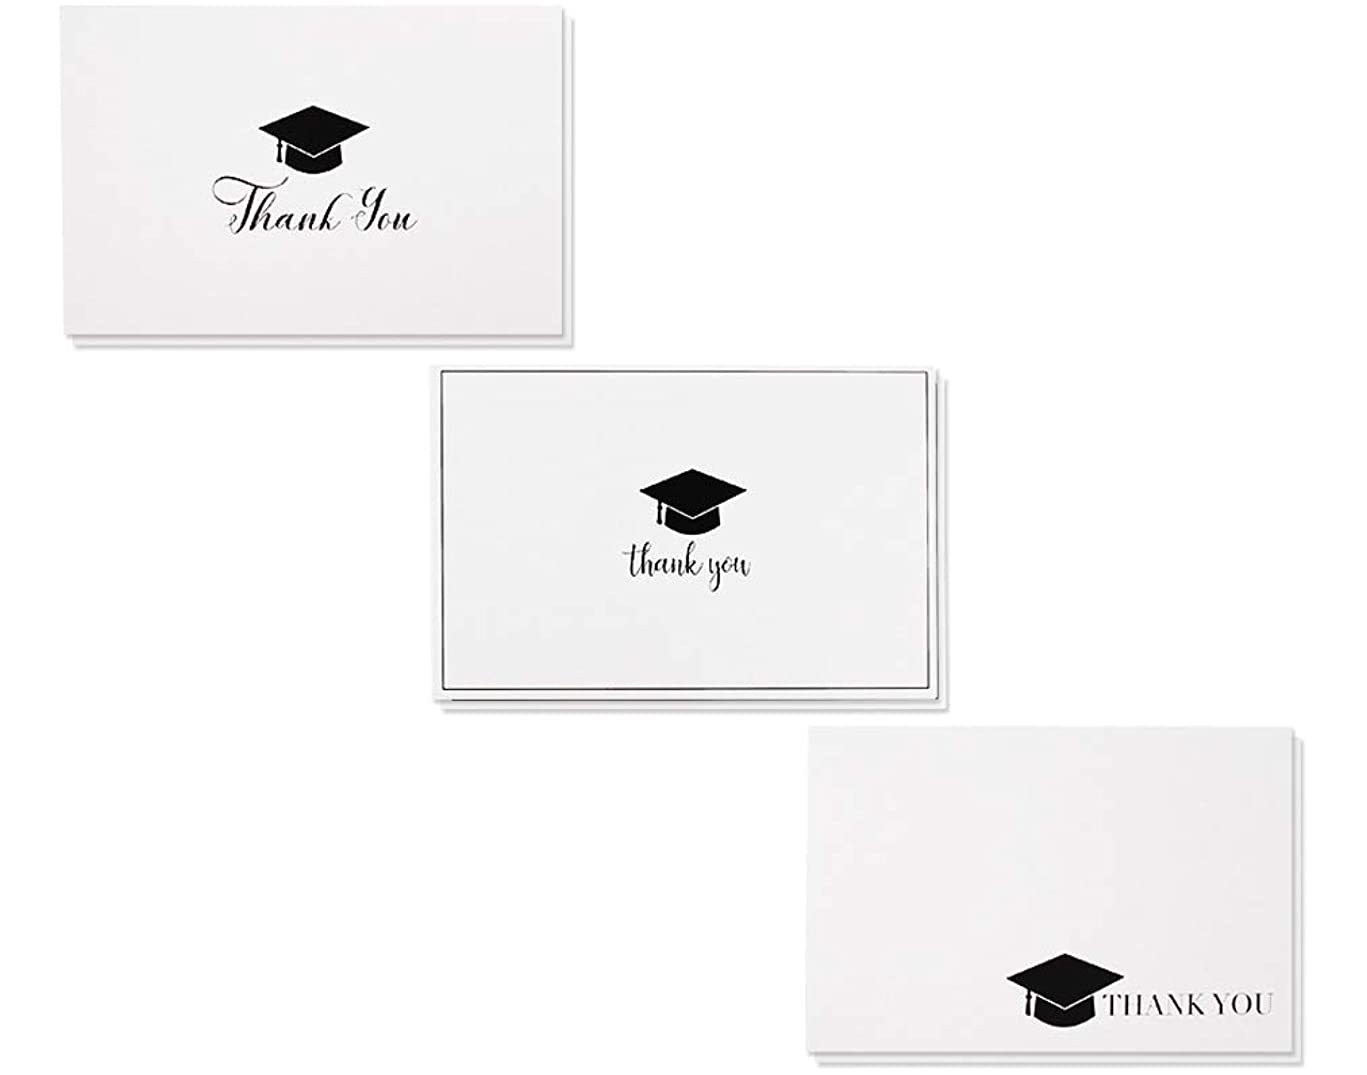 36-Pack Graduation Thank You Cards - Thank You Greeting Cards Bulk Box Set, 3 Black and White Graduation Cap Thank You Designs, Includes 36 Note Cards and White Envelopes, 4 x 6 Inches